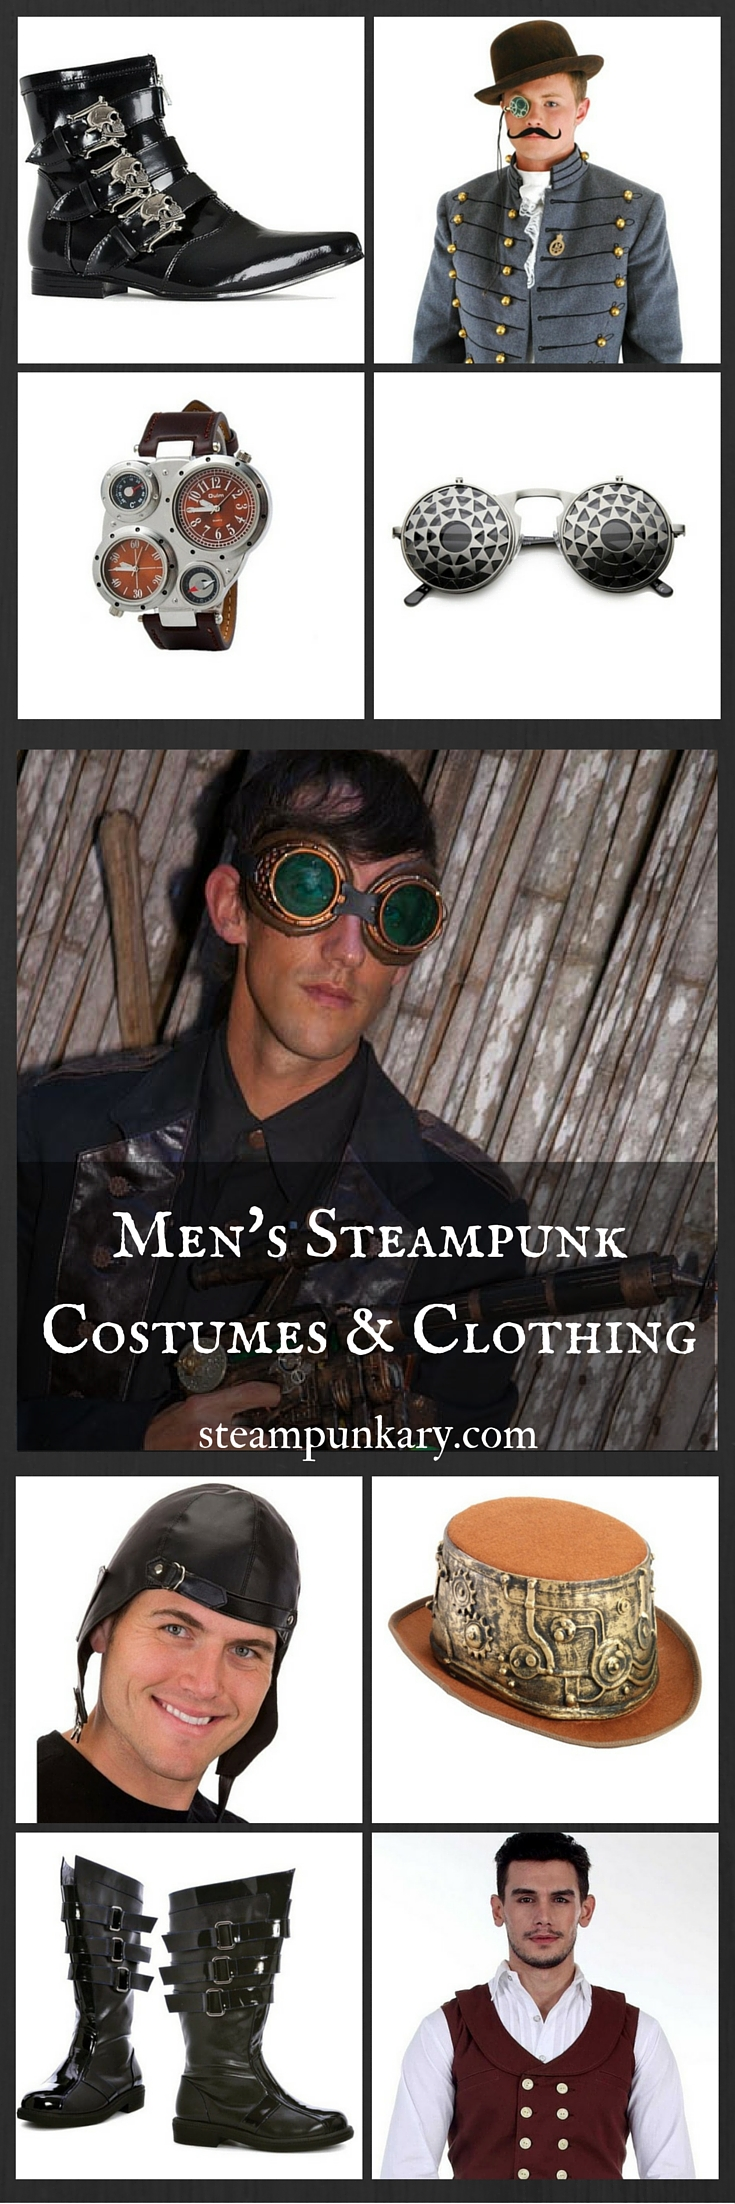 Men's Steampunk Costumes and Clothing